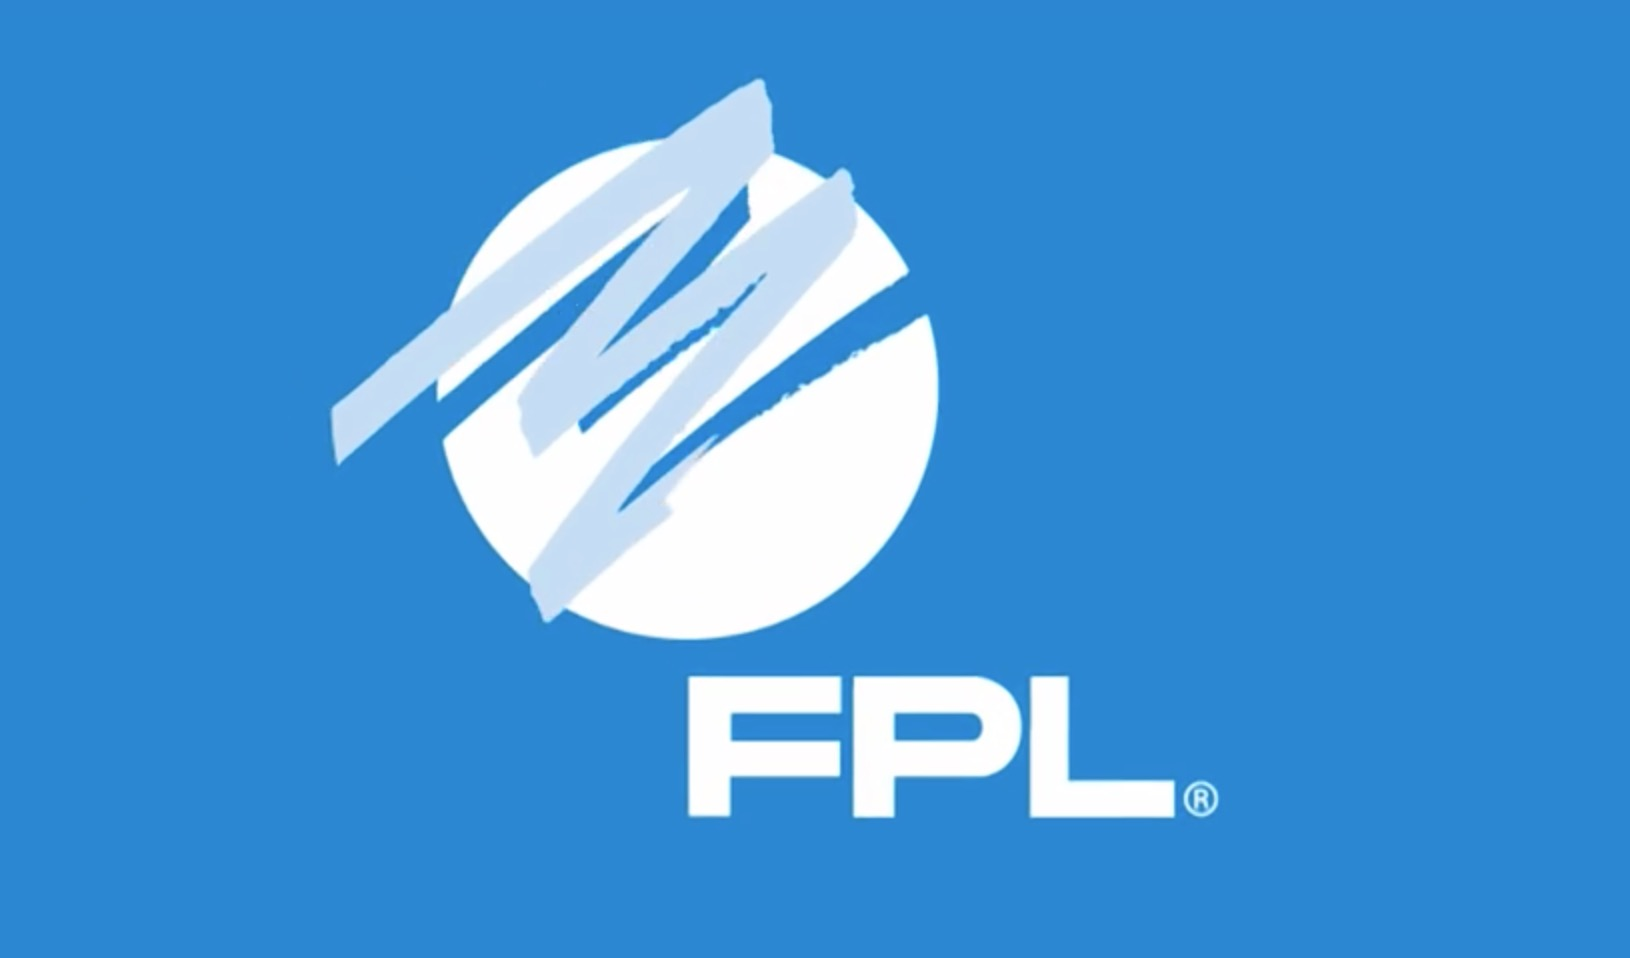 FPL plume decision appealed to supreme court